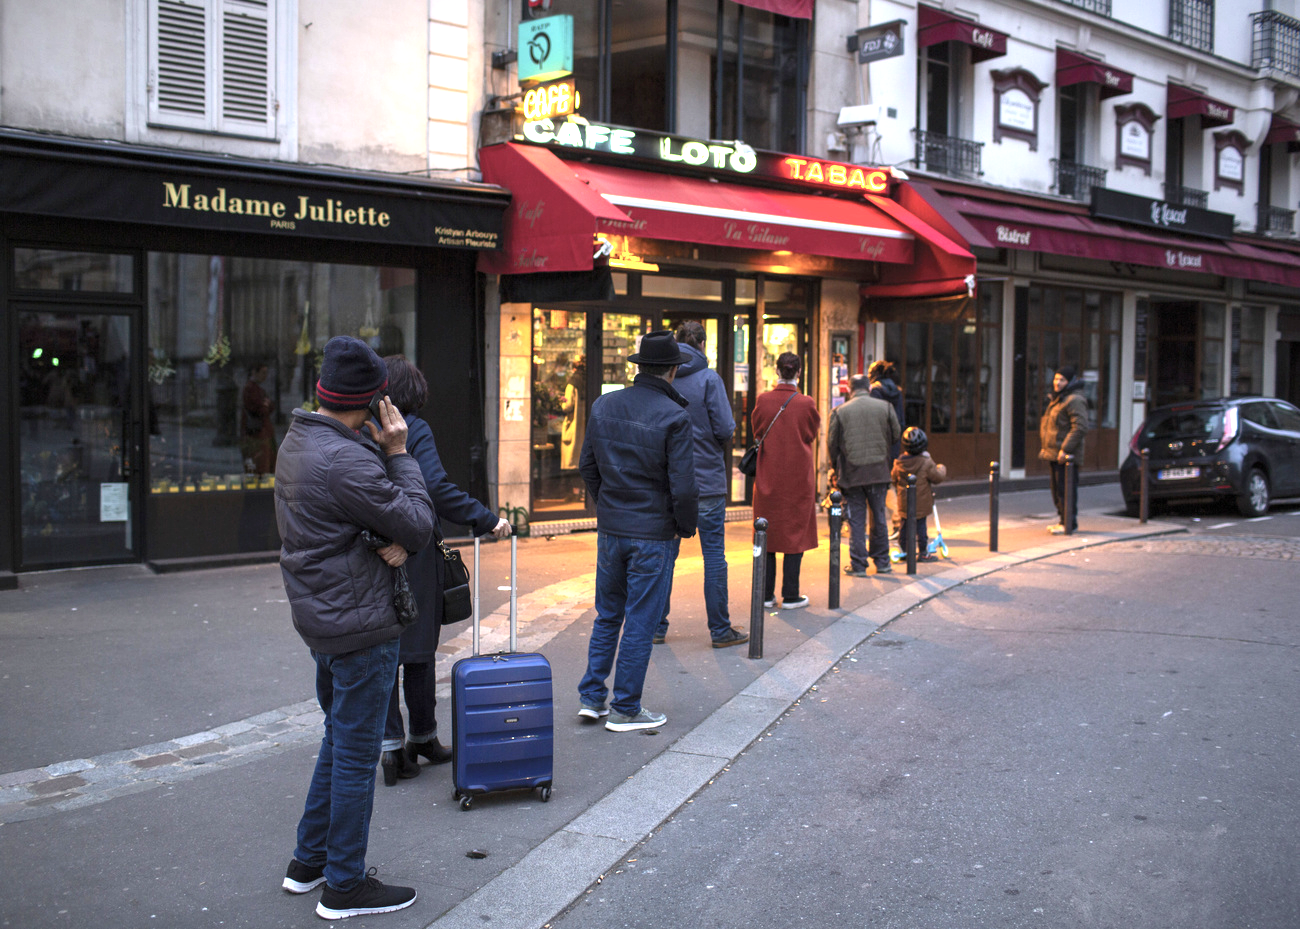 Des personnes font la queue à l'entrée d'un commerce parisien en respectant les distances.